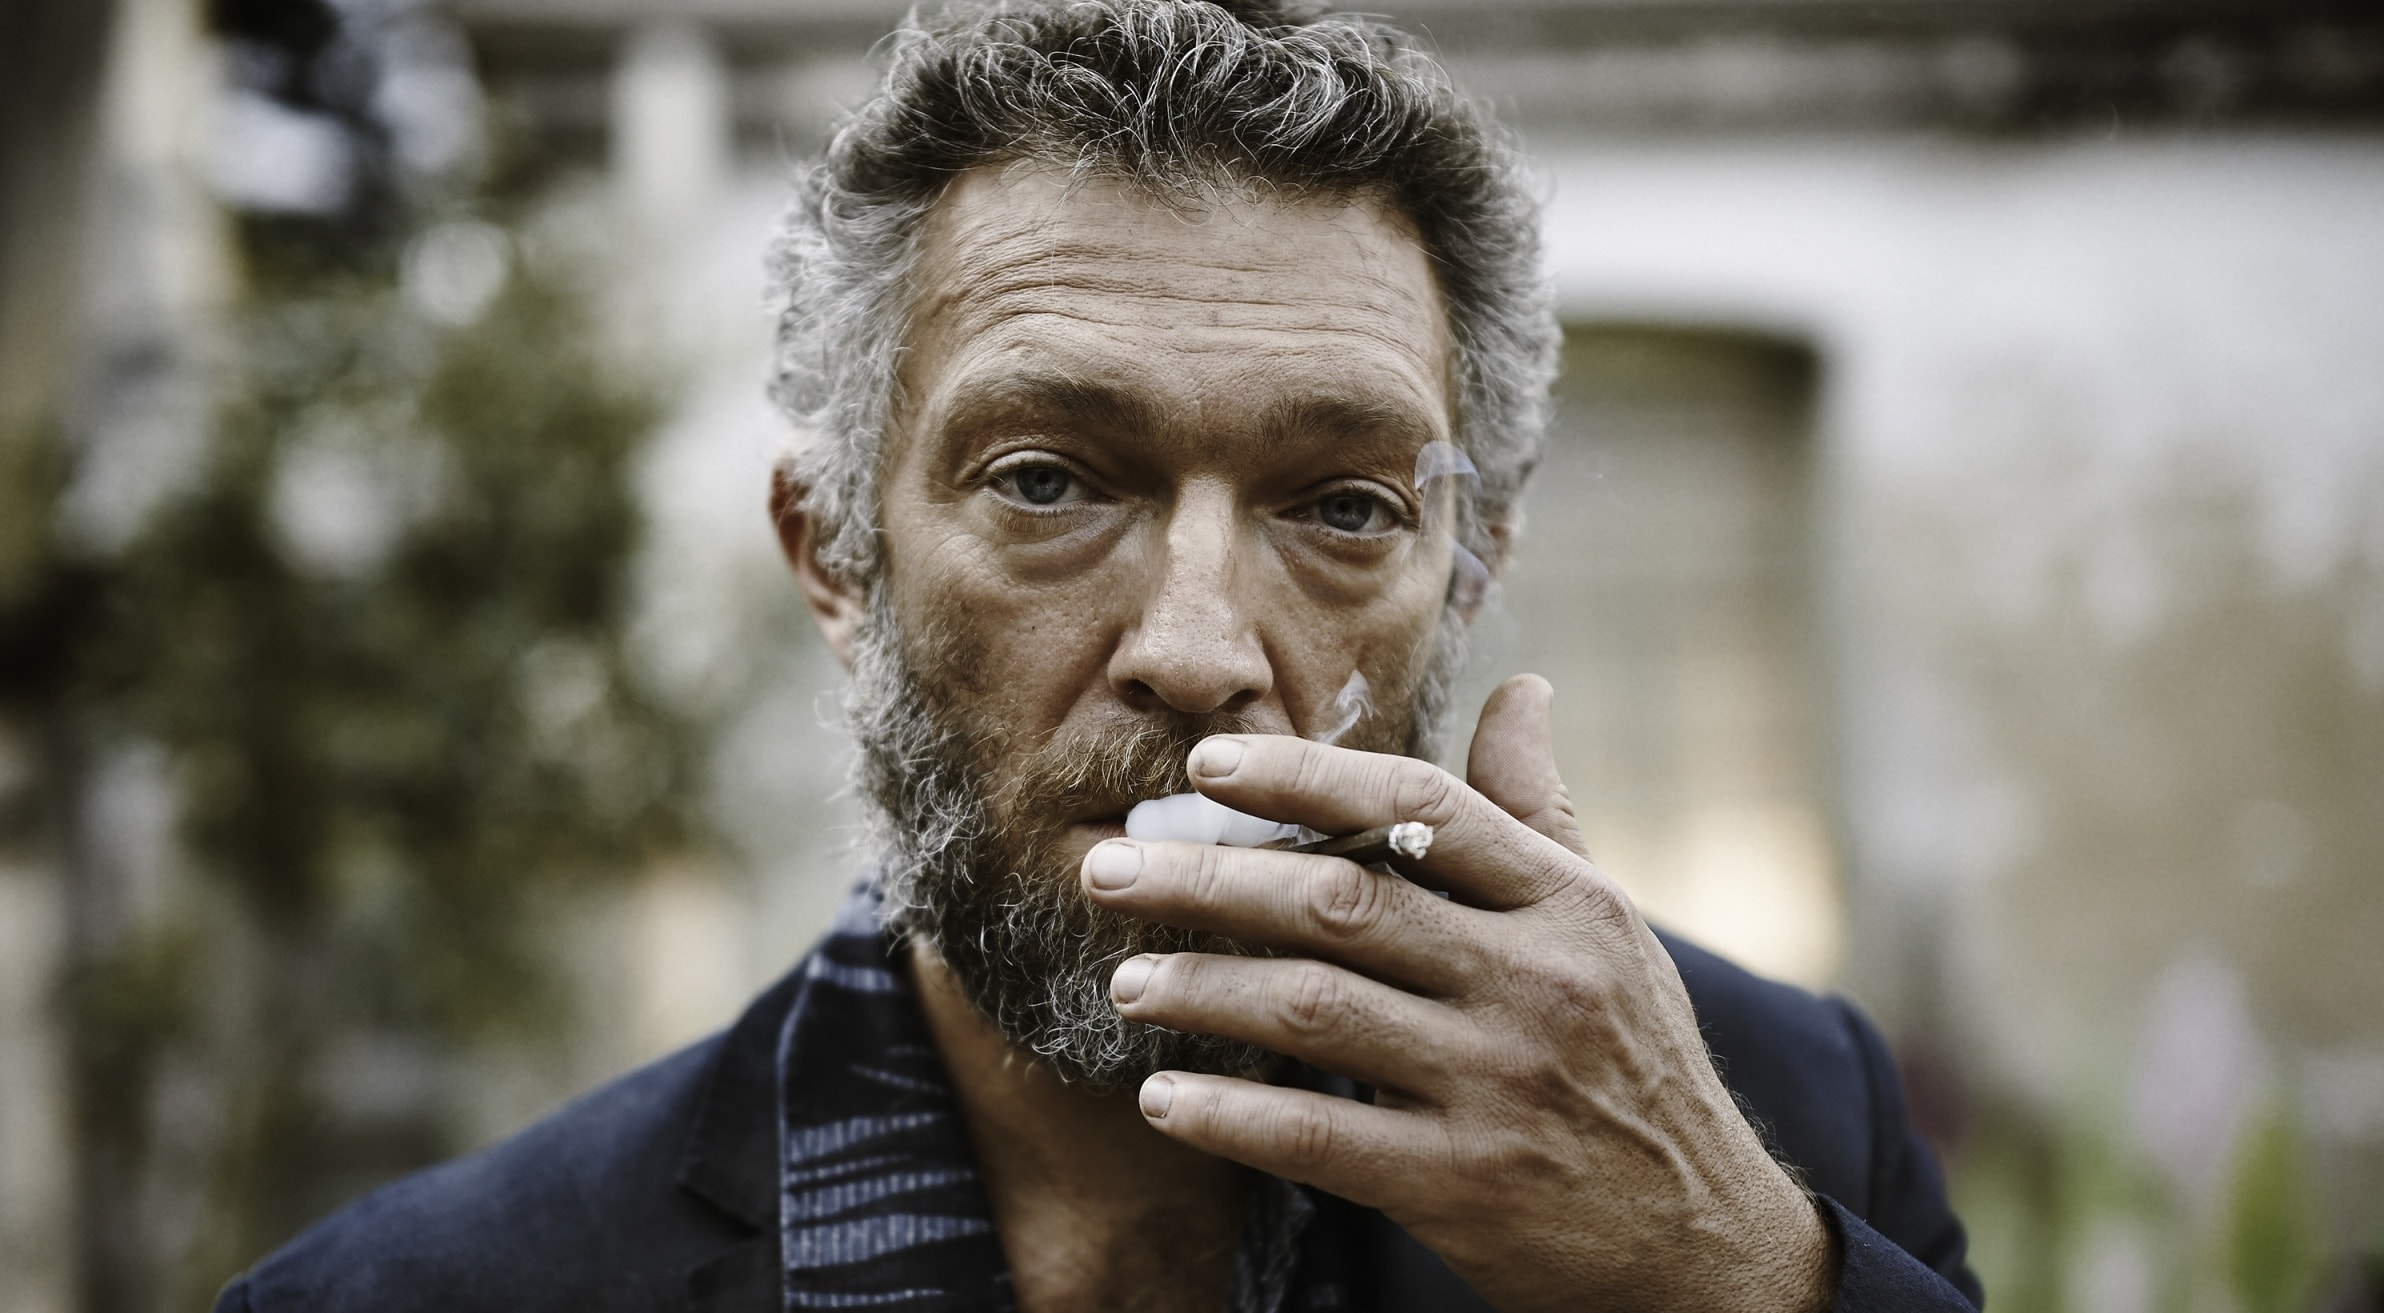 Vincent Cassel Background